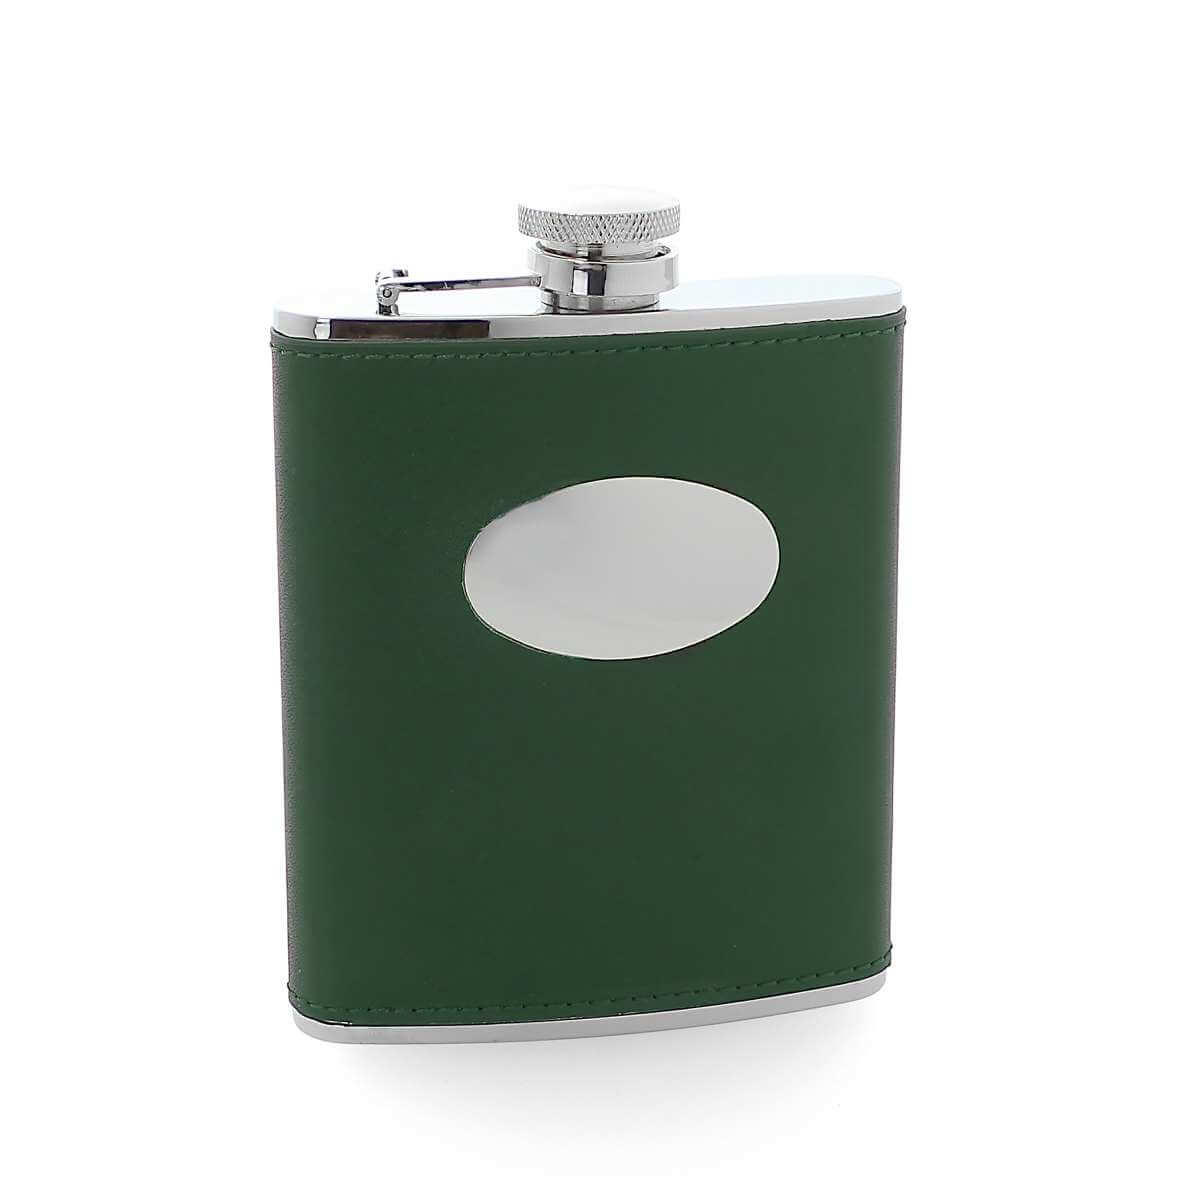 6oz Stainless Steel & Green Leather Hip Flask with Engraving Plate